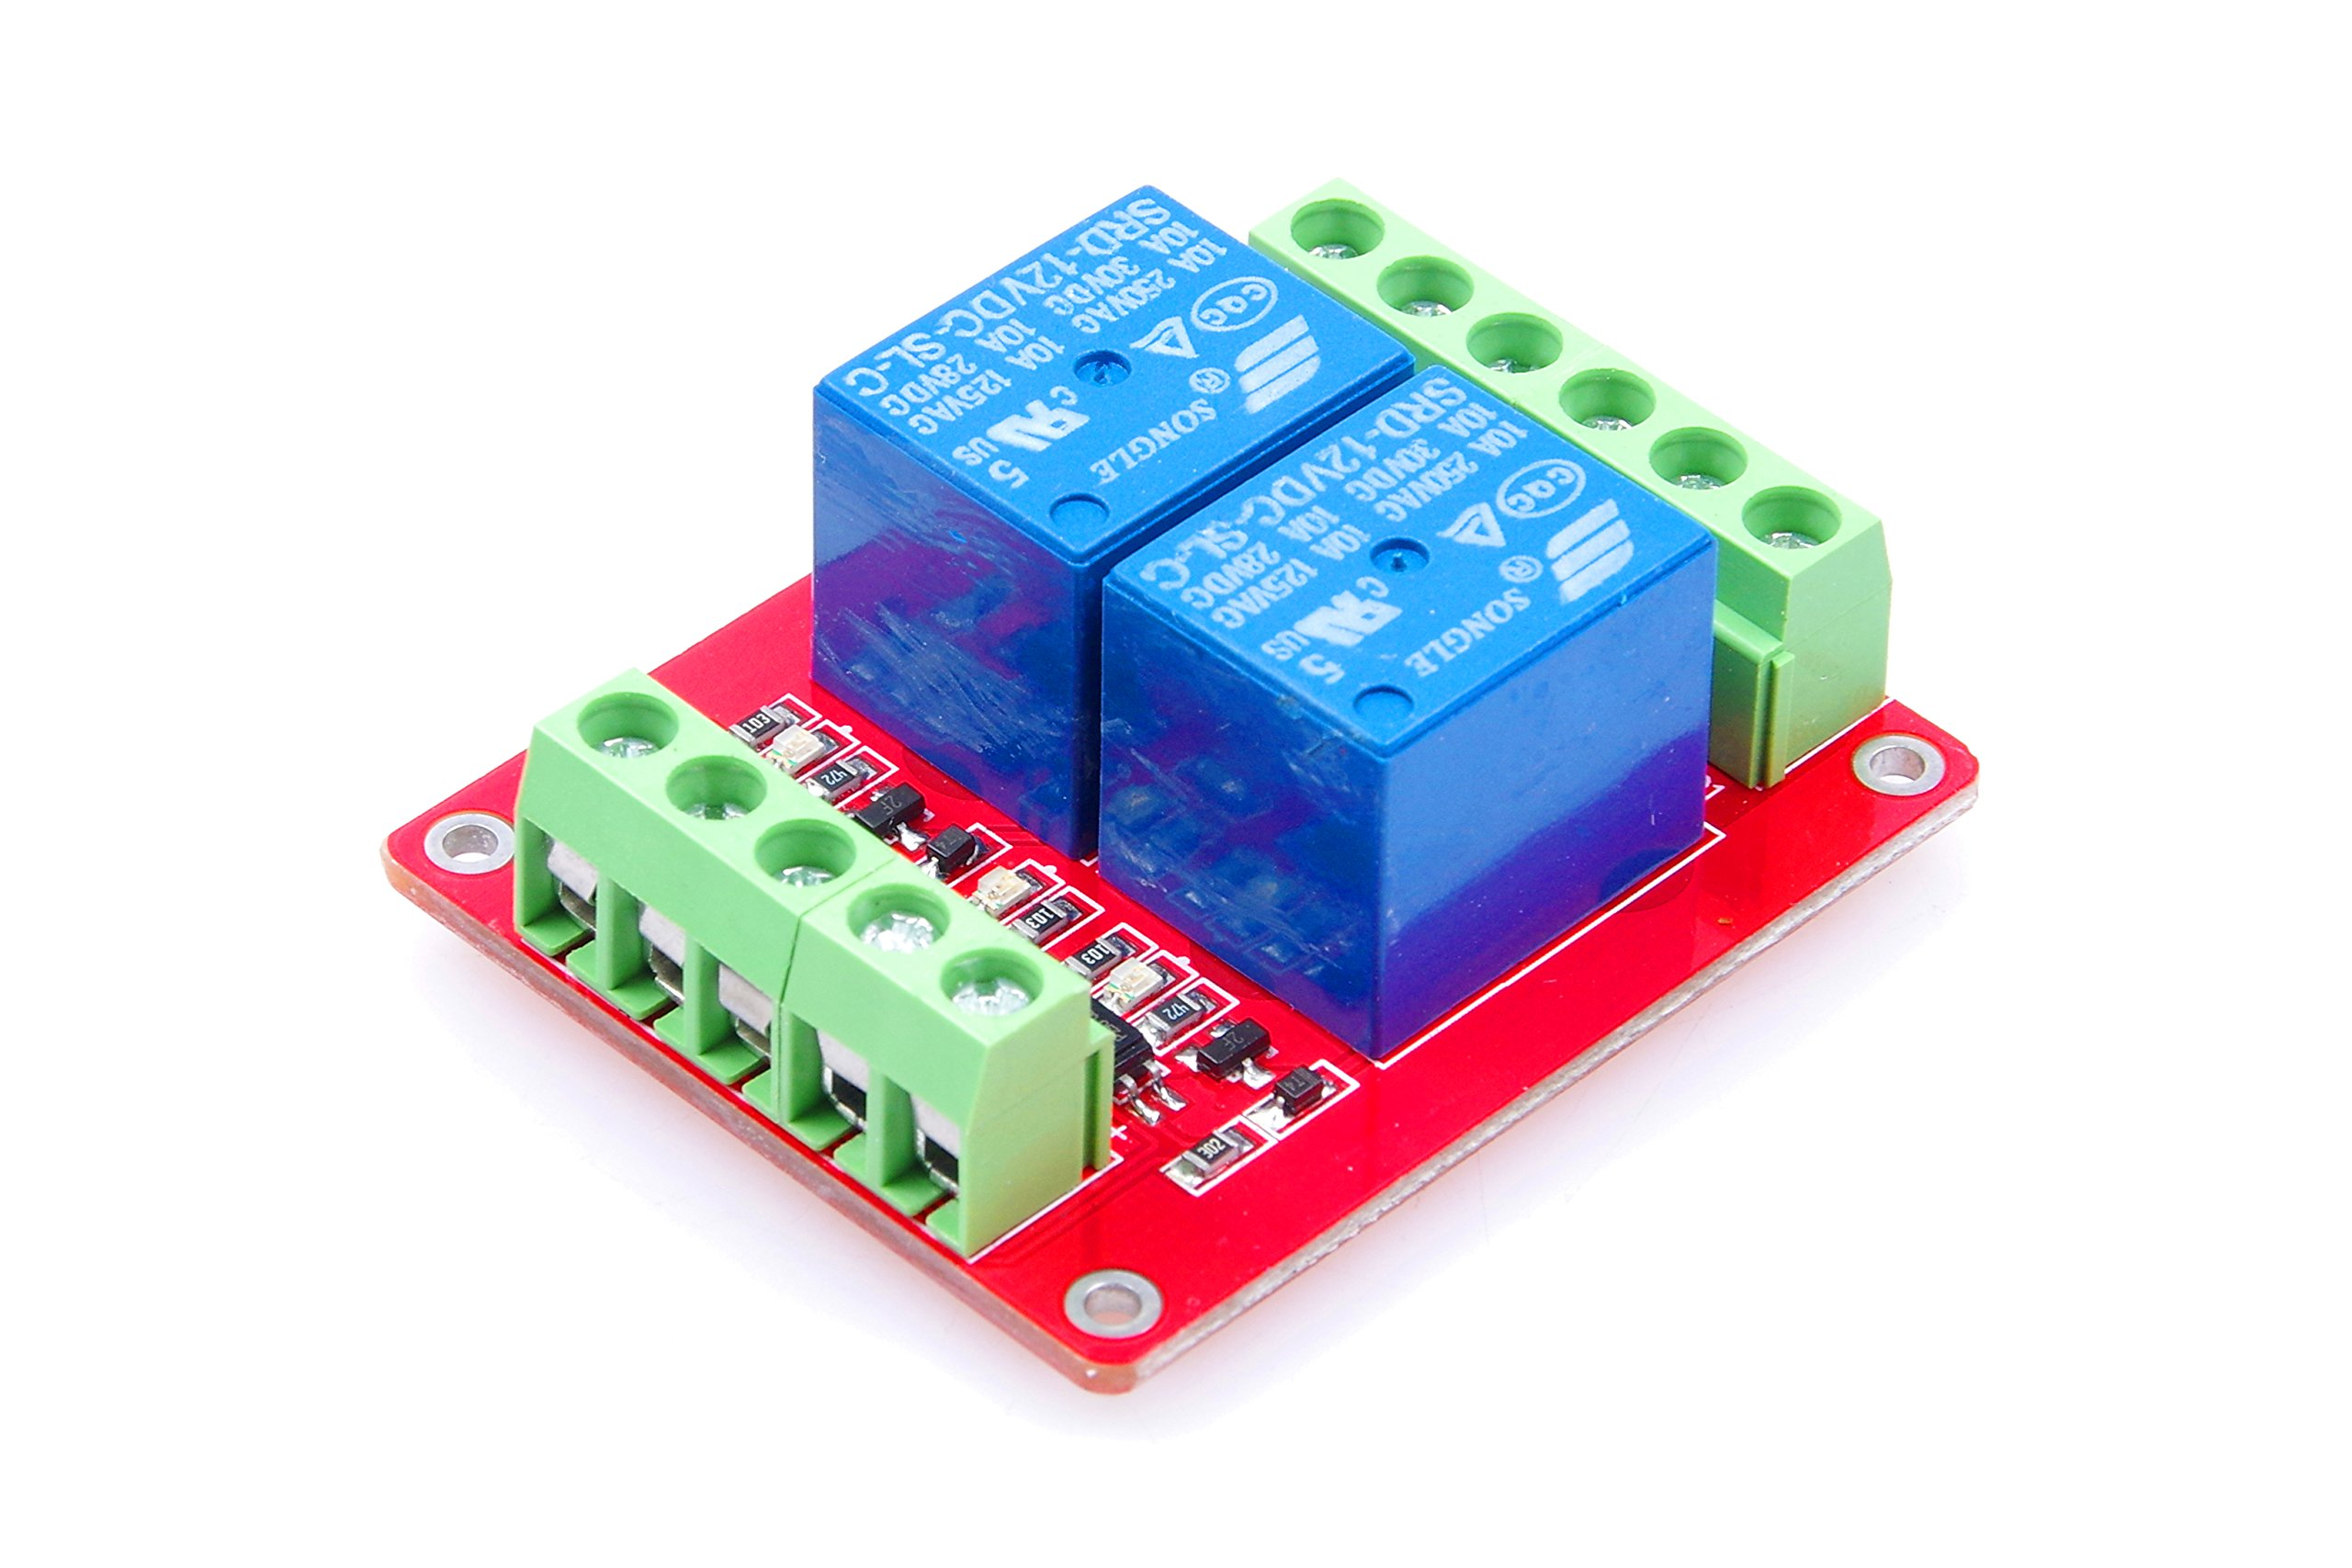 LM YN 2-Channel Relay Module Bidirectional Optocoupler Isolated High-Low Trigger With Indicator light for Arduino, Various Power Control Applications (12V)